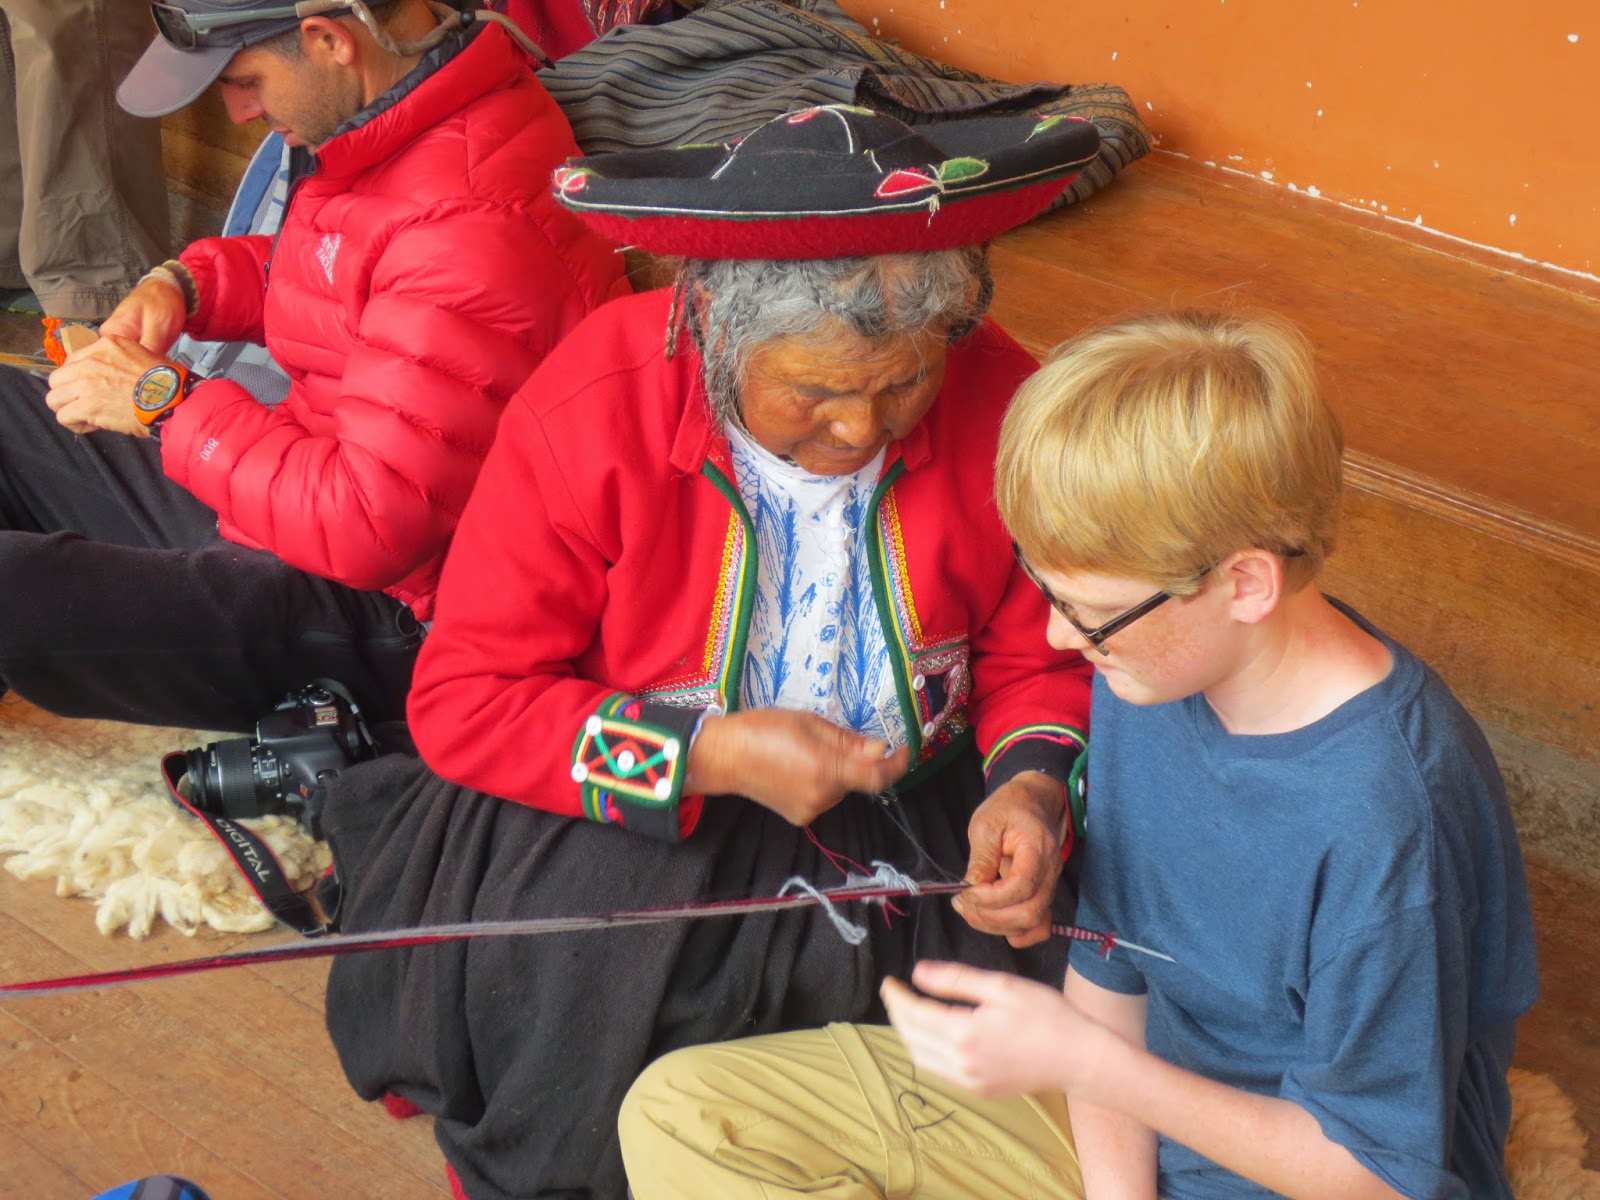 A middle school student learns traditional weaving techniques in Peru. Travel alerts issued after terrorists attack in European countries have convinced districts to send students elsewhere in the world.